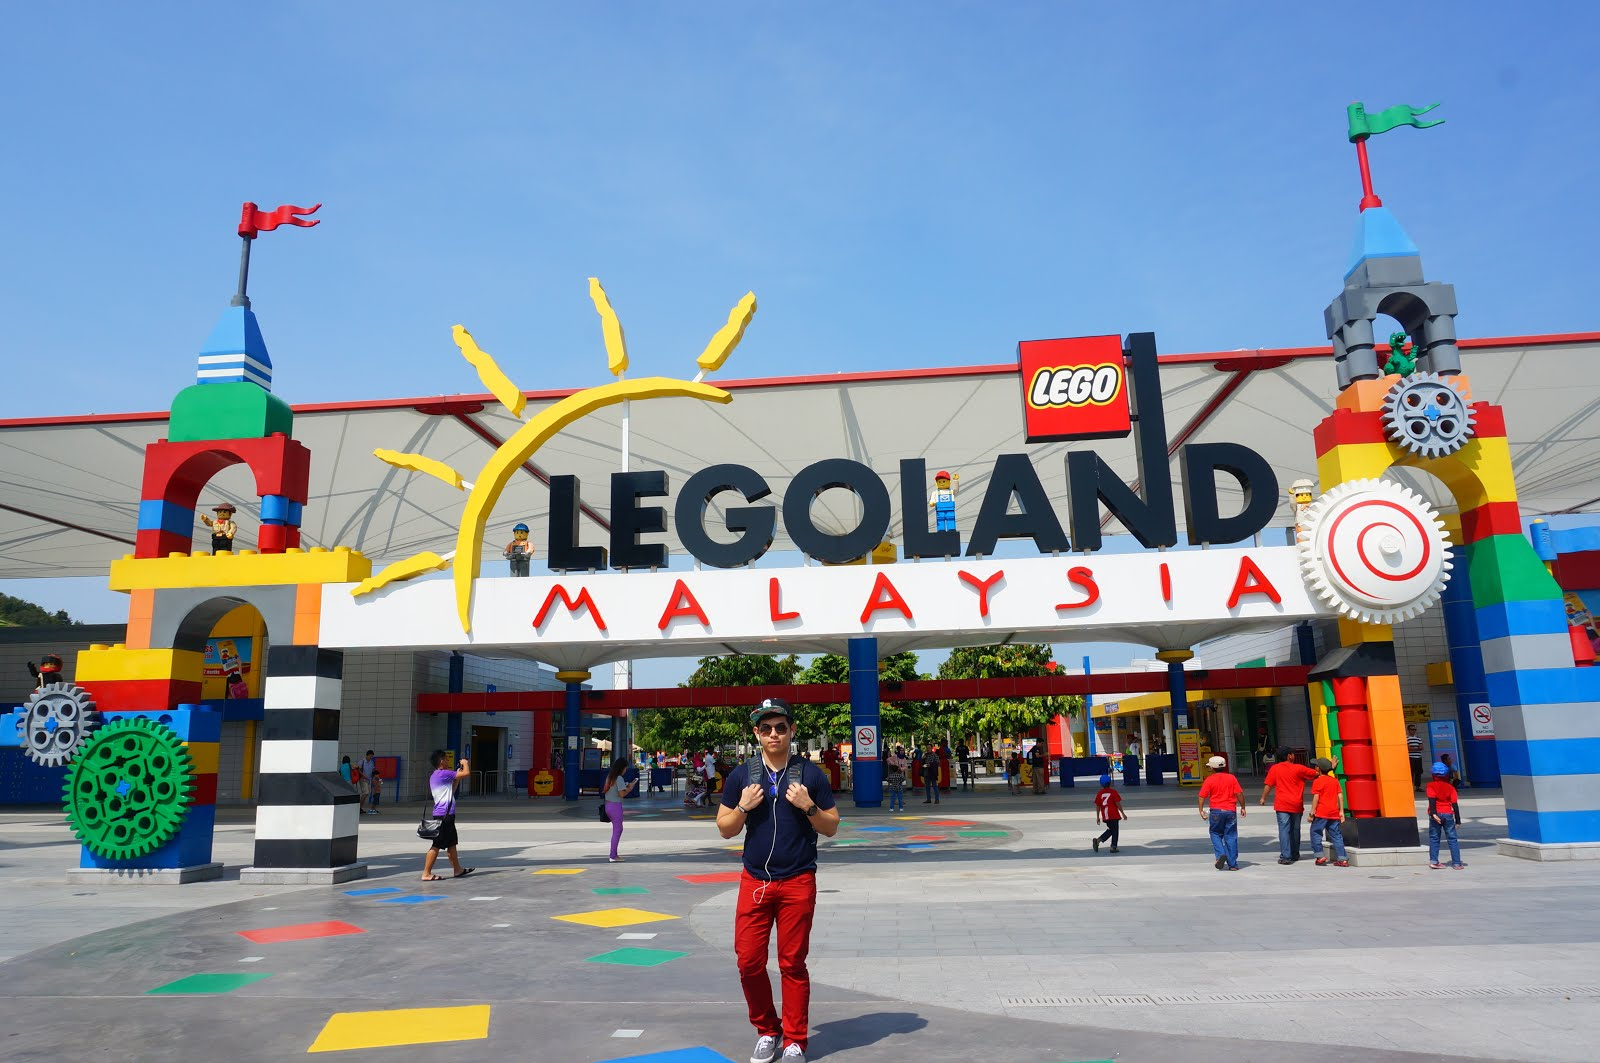 legoland malaysia Dear michelle ann s, greetings from legoland malaysia resort we are glad that your kids had a wonderful time it has been our desire to serve all guest feel welcomed and enjoyed their time in the park.